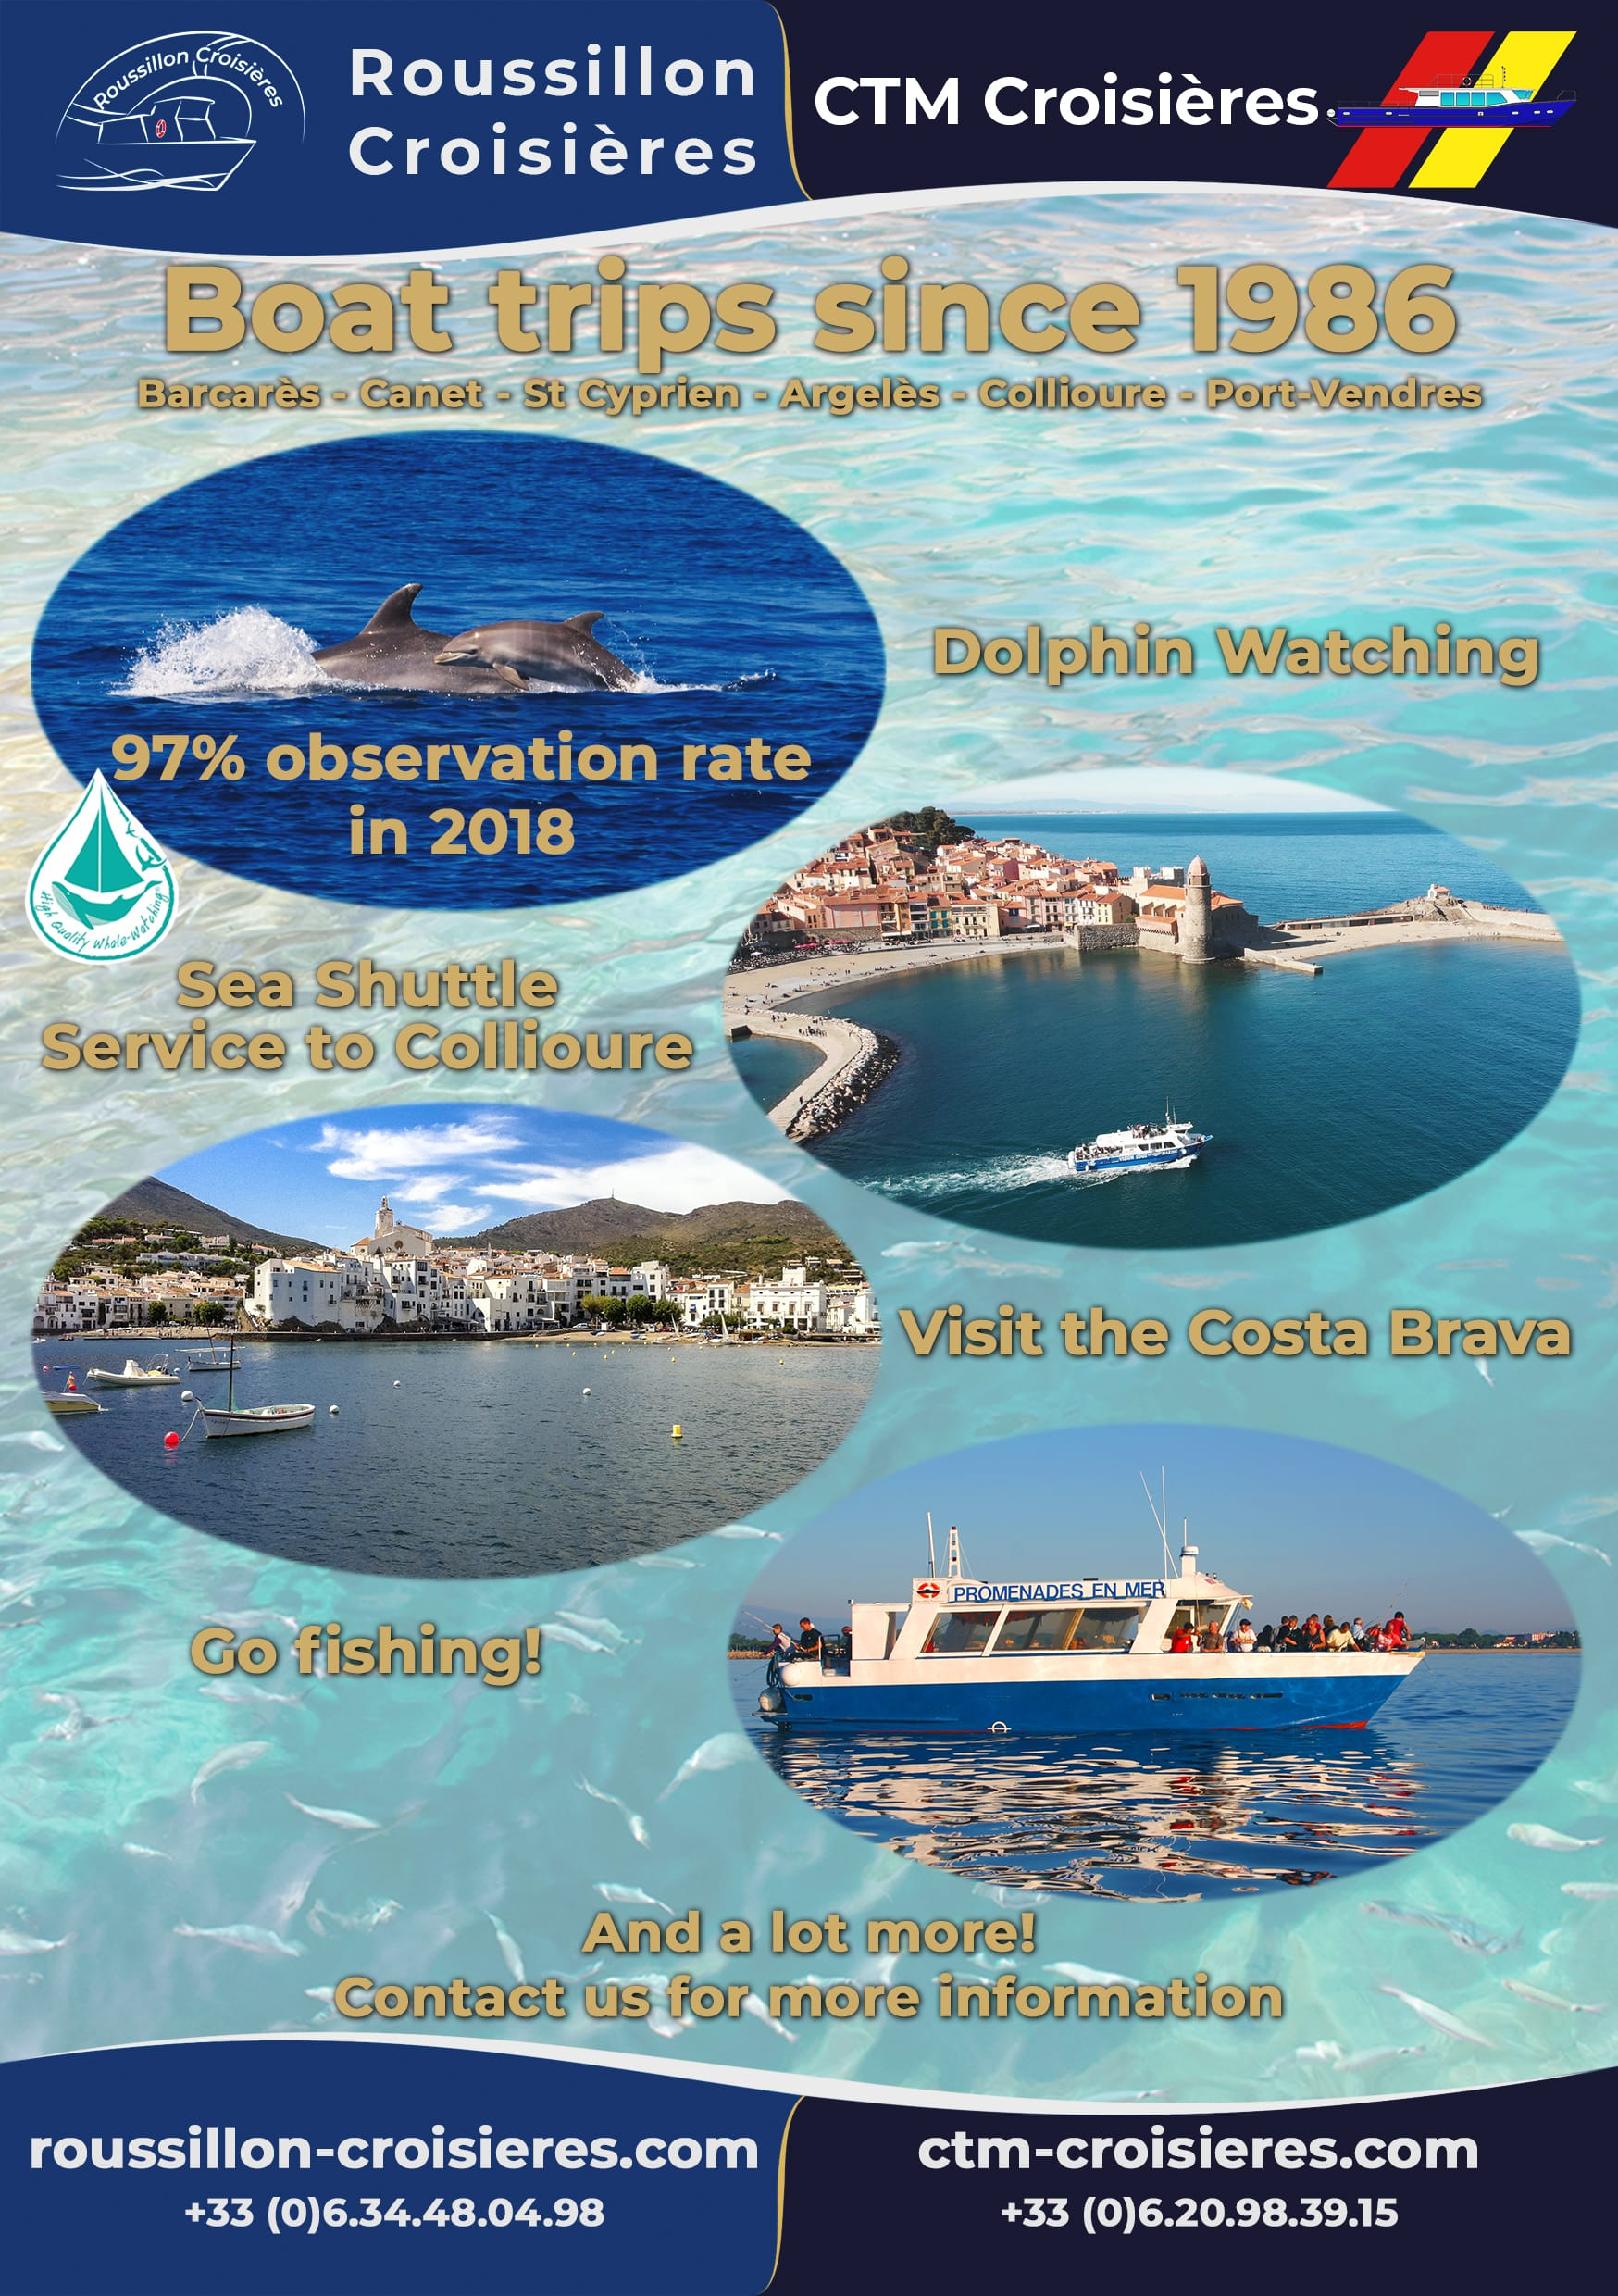 boat trips with oussillon croisieres